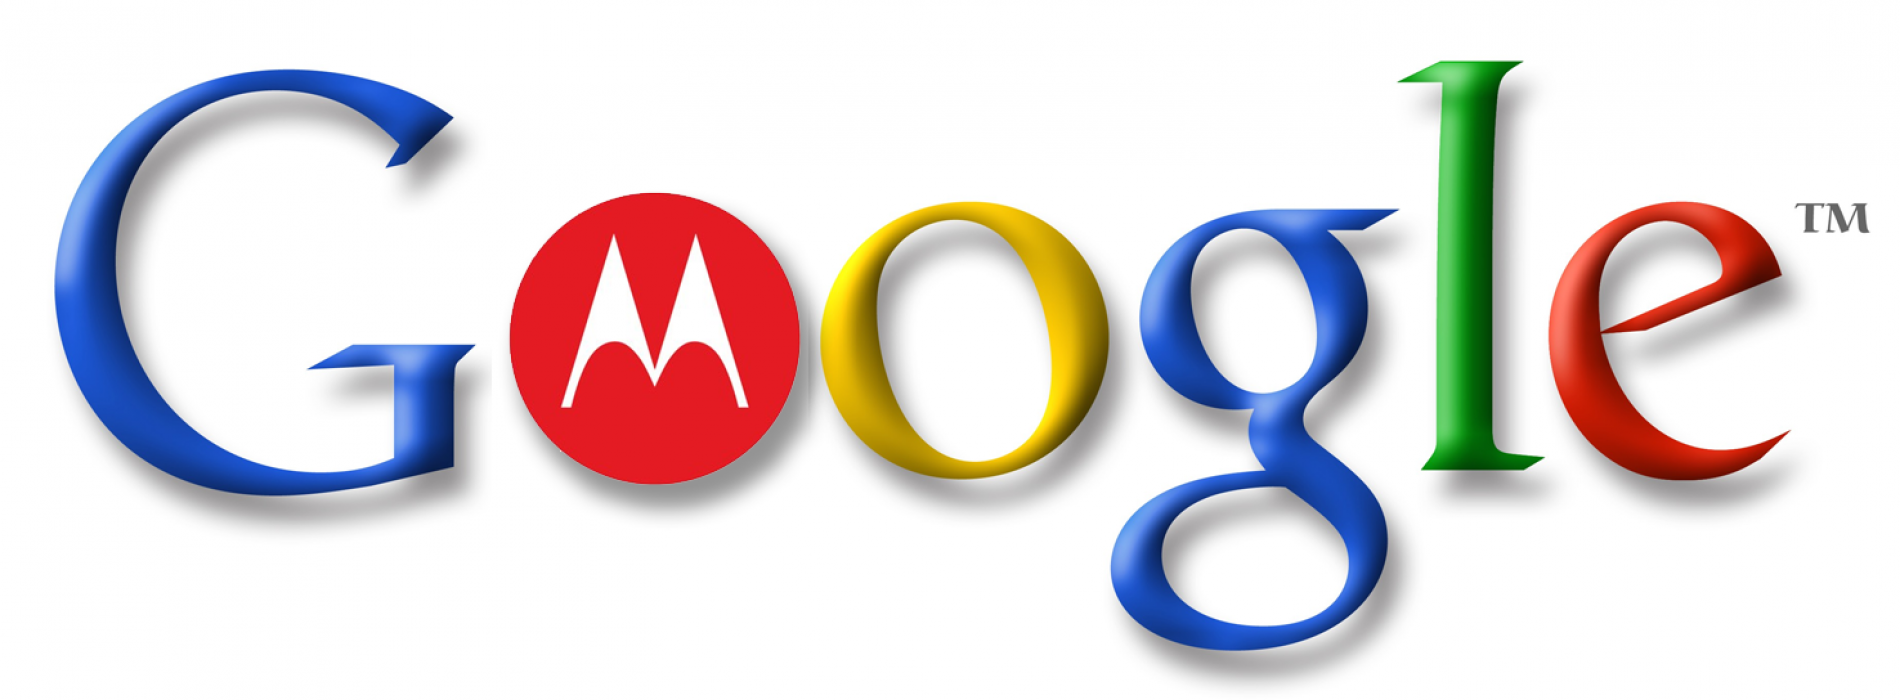 EU clears Google and Motorola deal